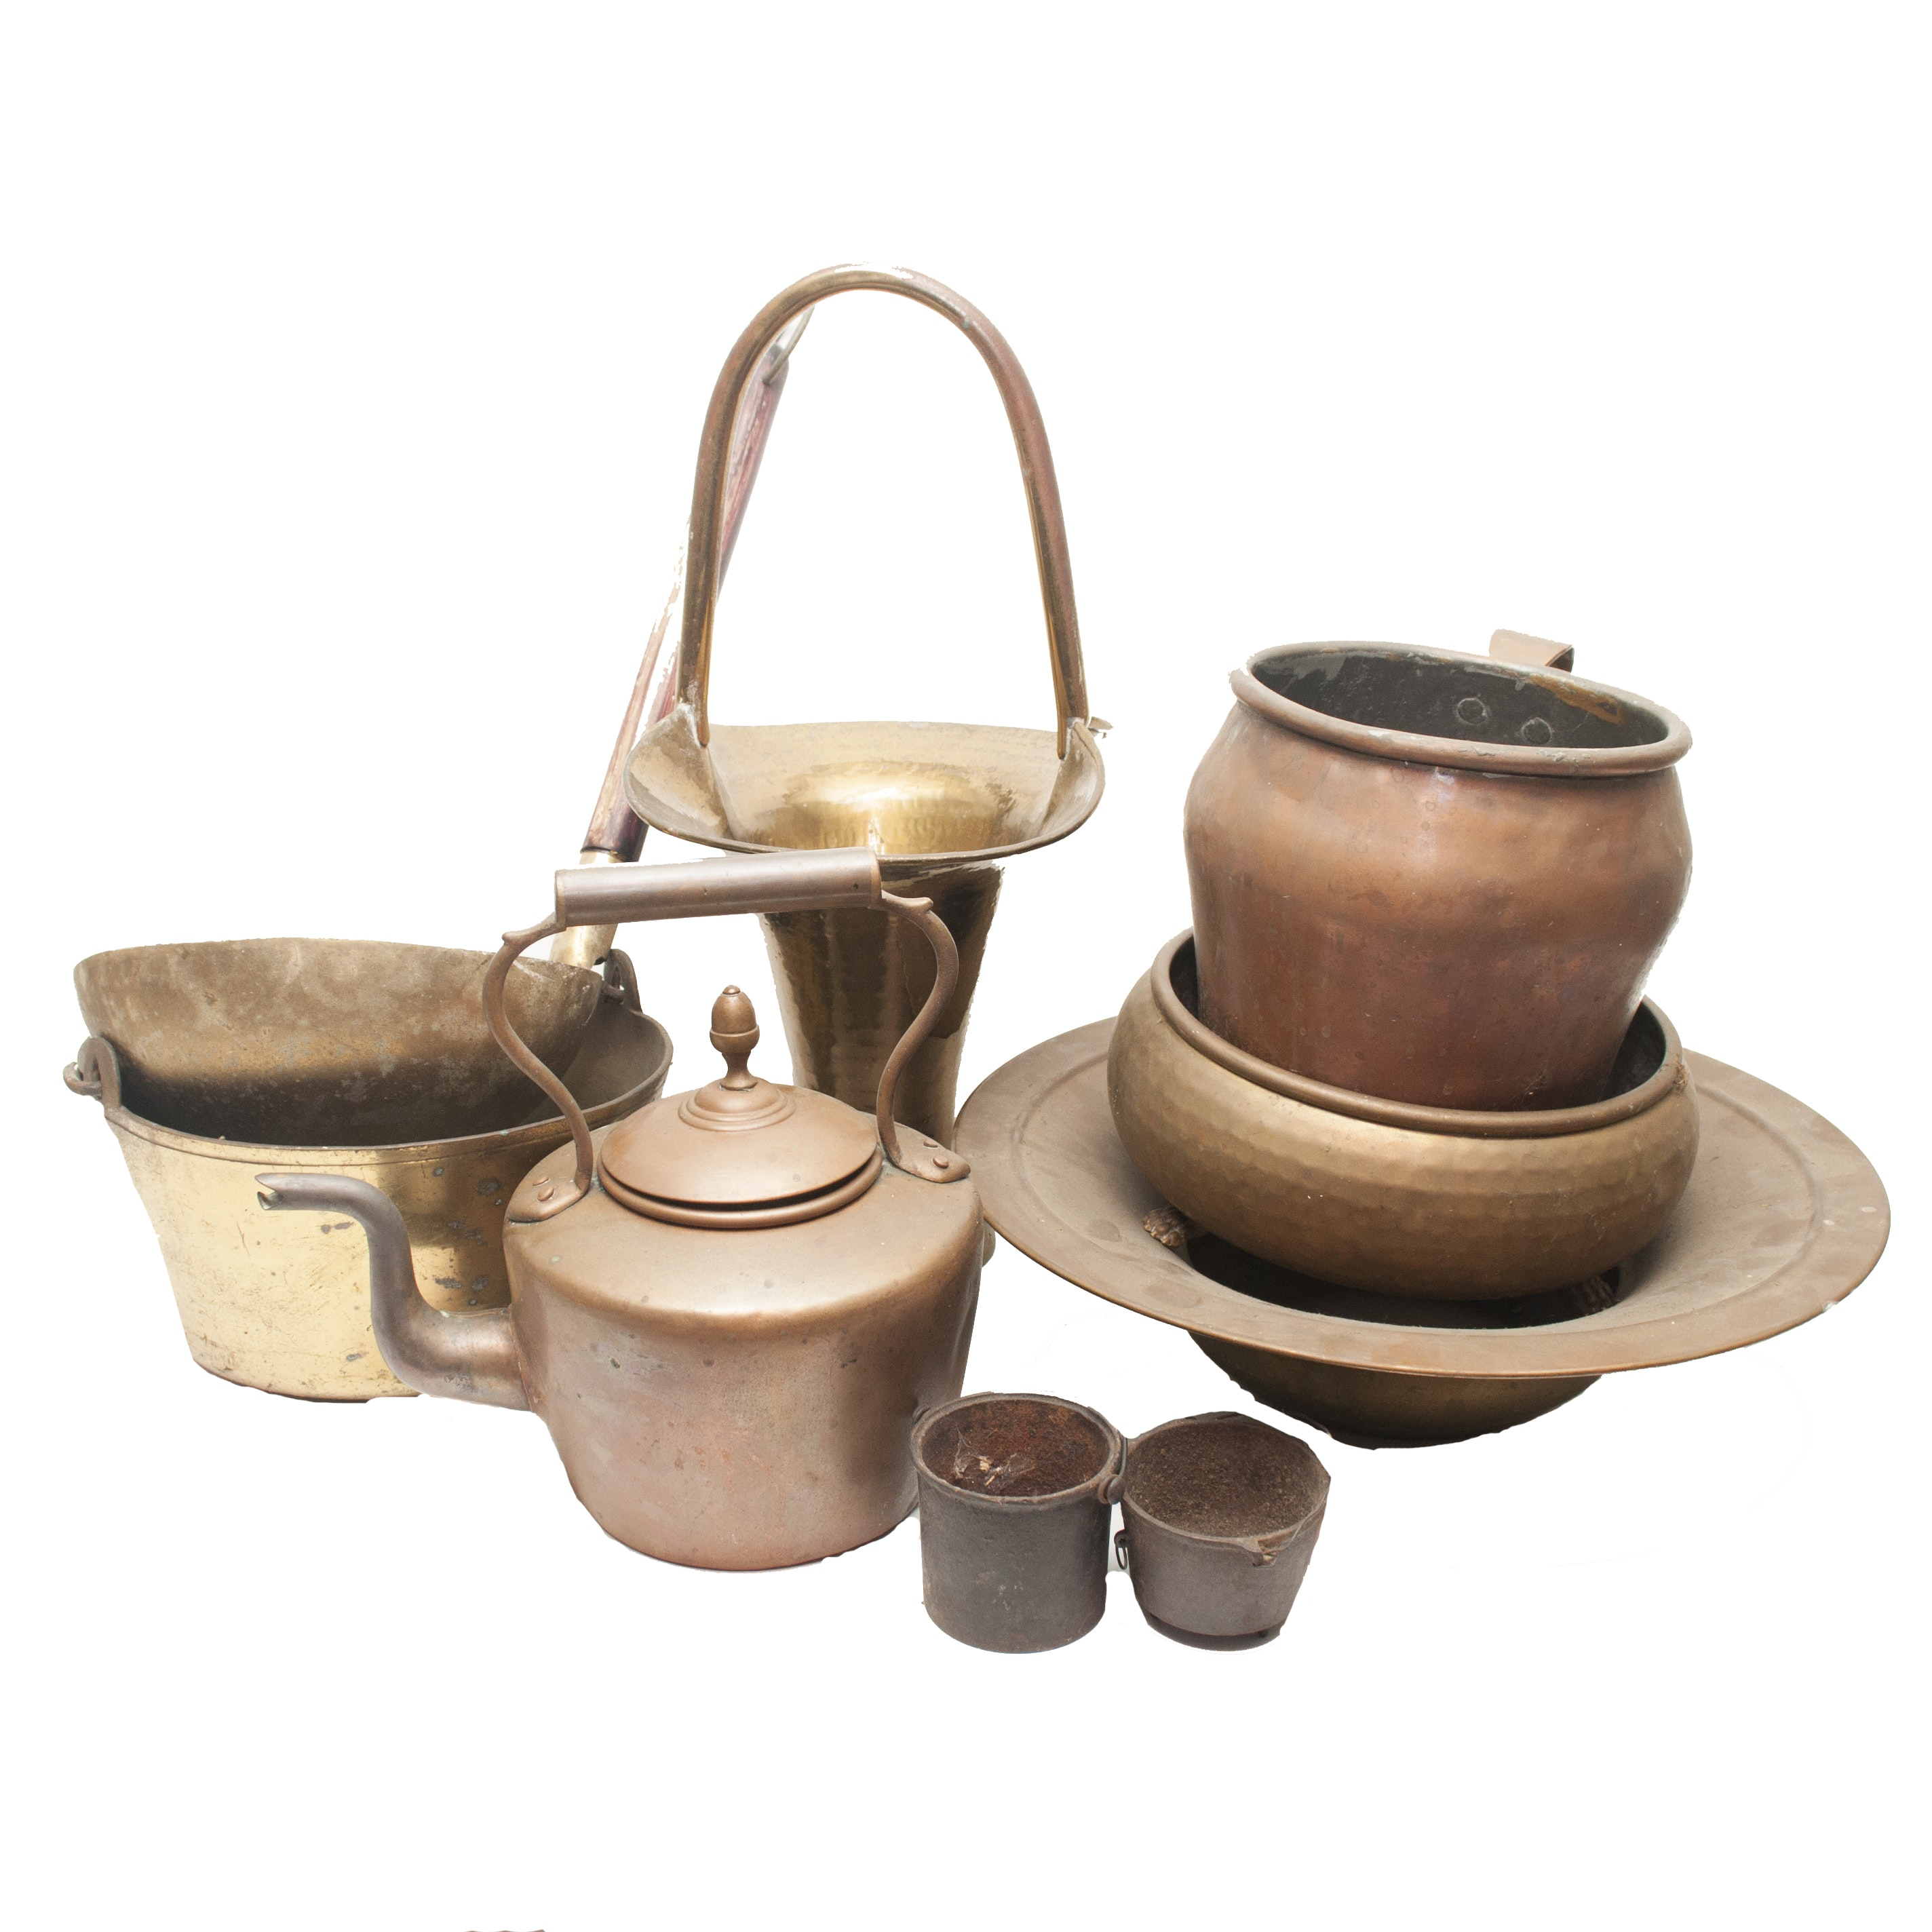 Antique Brass and Copper Pots and Pans